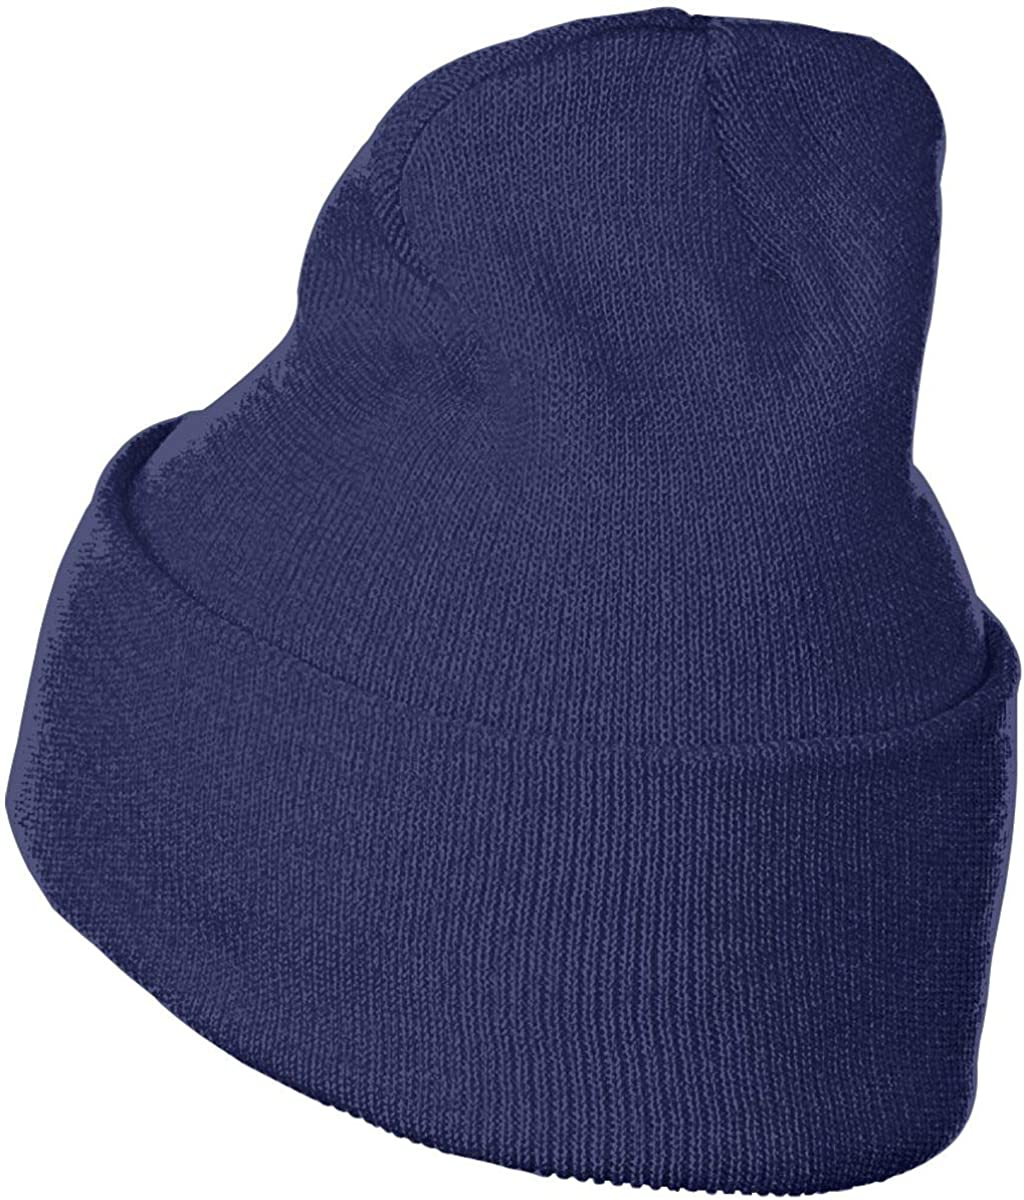 SLADDD1 Gesture Six Warm Winter Hat Knit Beanie Skull Cap Cuff Beanie Hat Winter Hats for Men /& Women